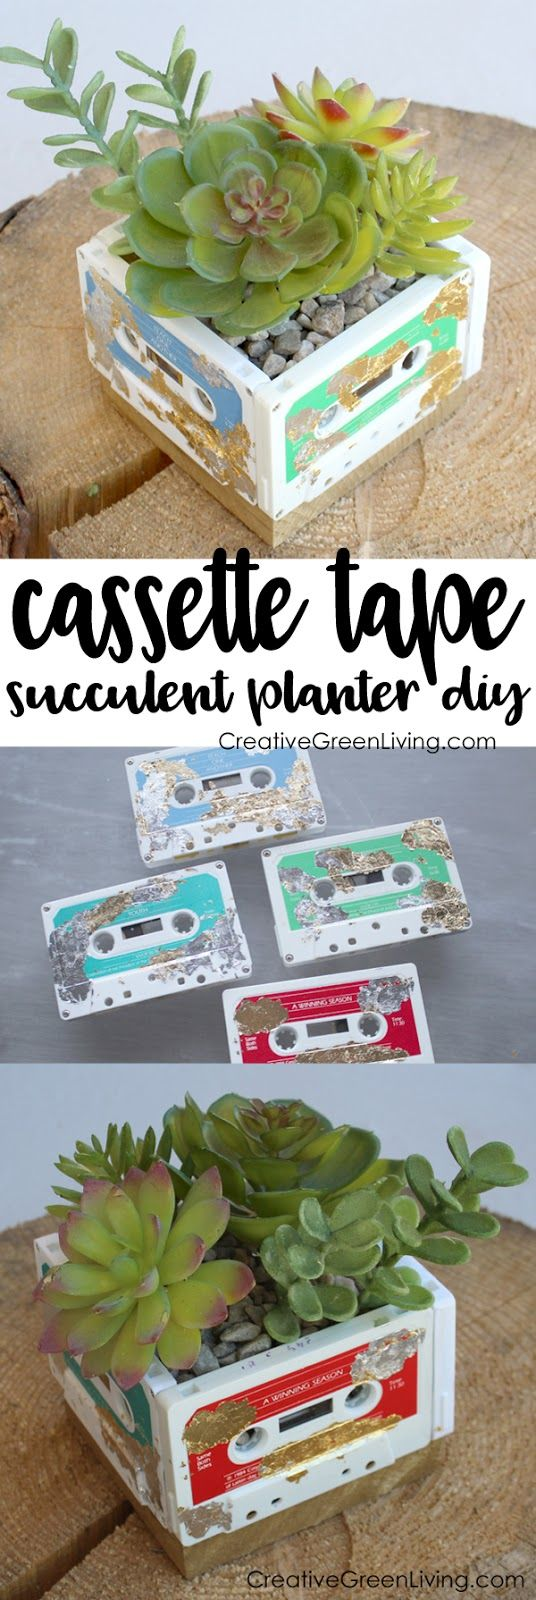 Upcycle your old cassette tapes into a cool DIY succulent planter with this tutorial from Natalie Shaw of Doodle Craft.